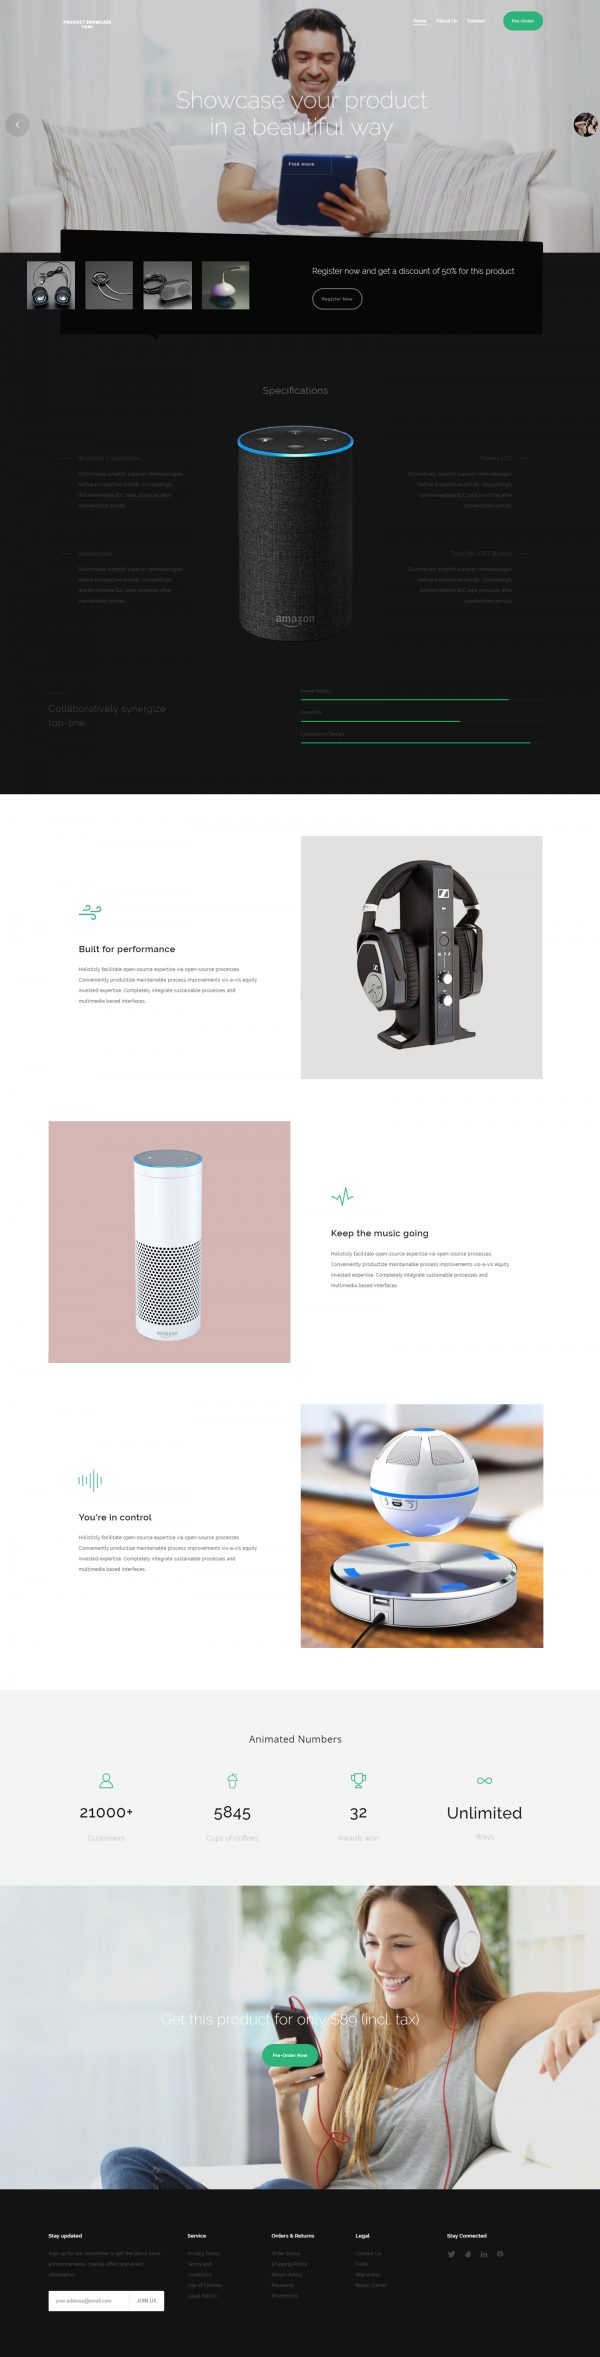 Product showcase website template